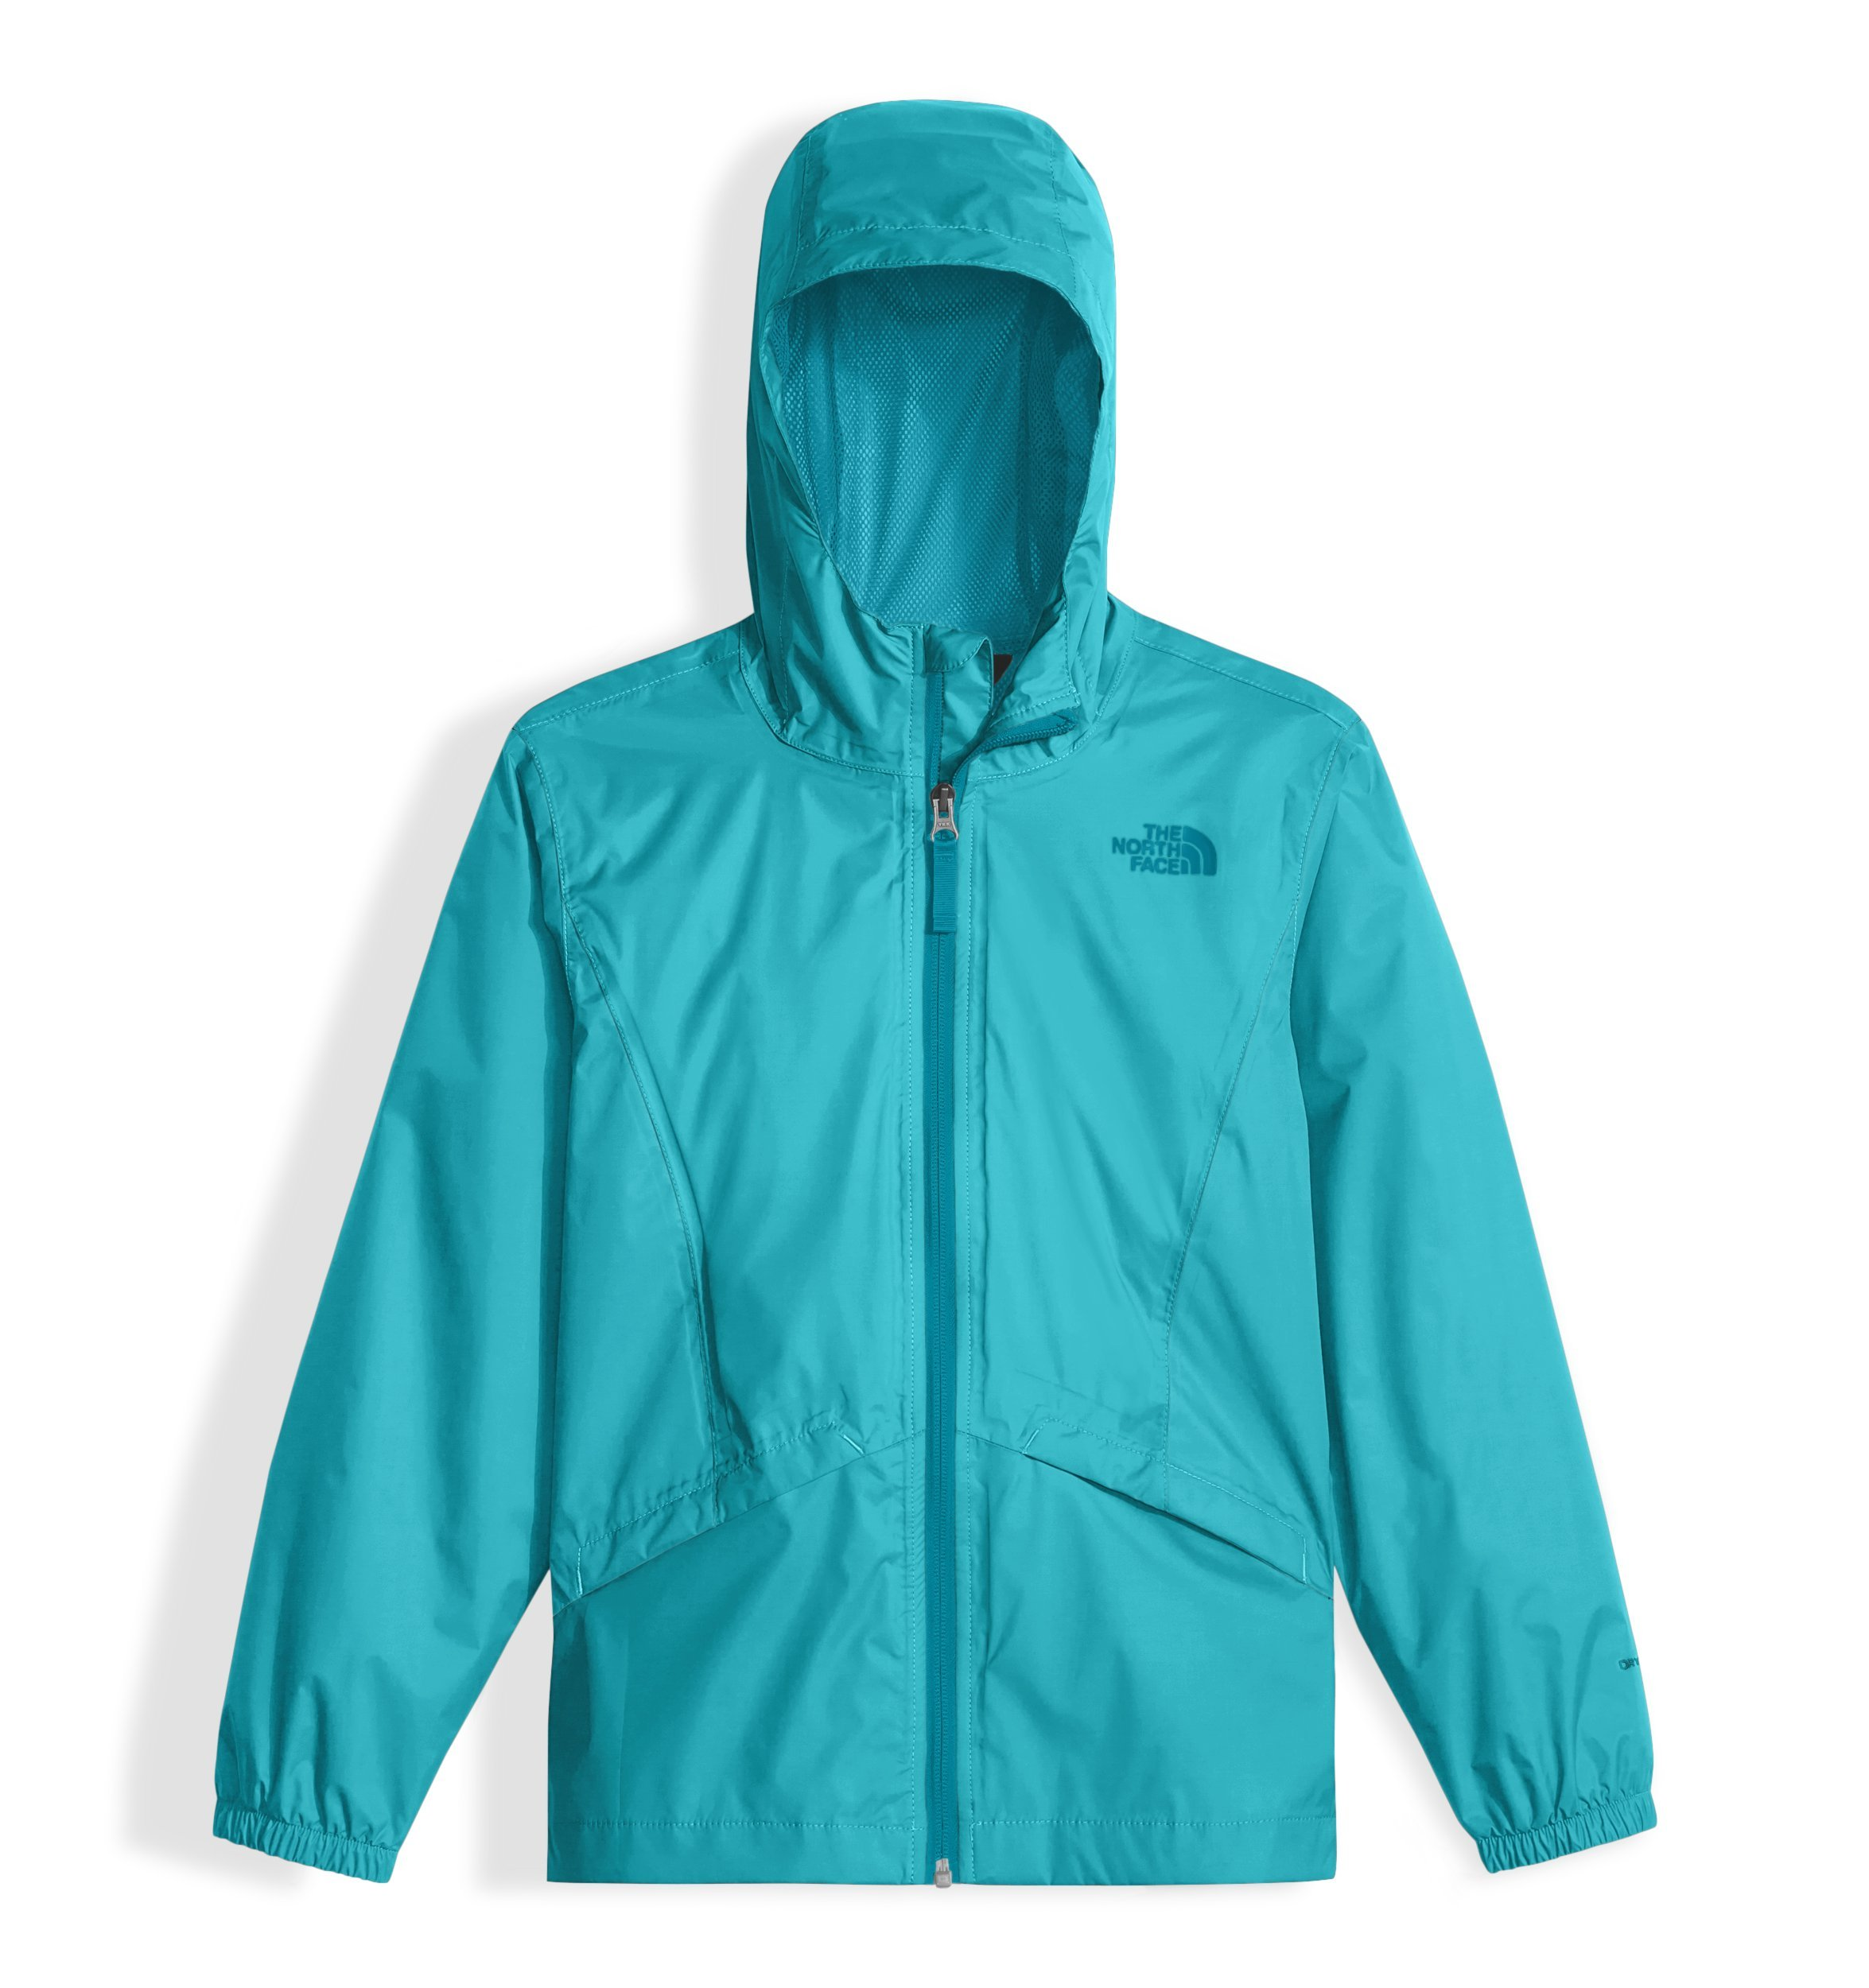 The North Face Girl's Zipline Rain Jacket - Blue Curacao - L